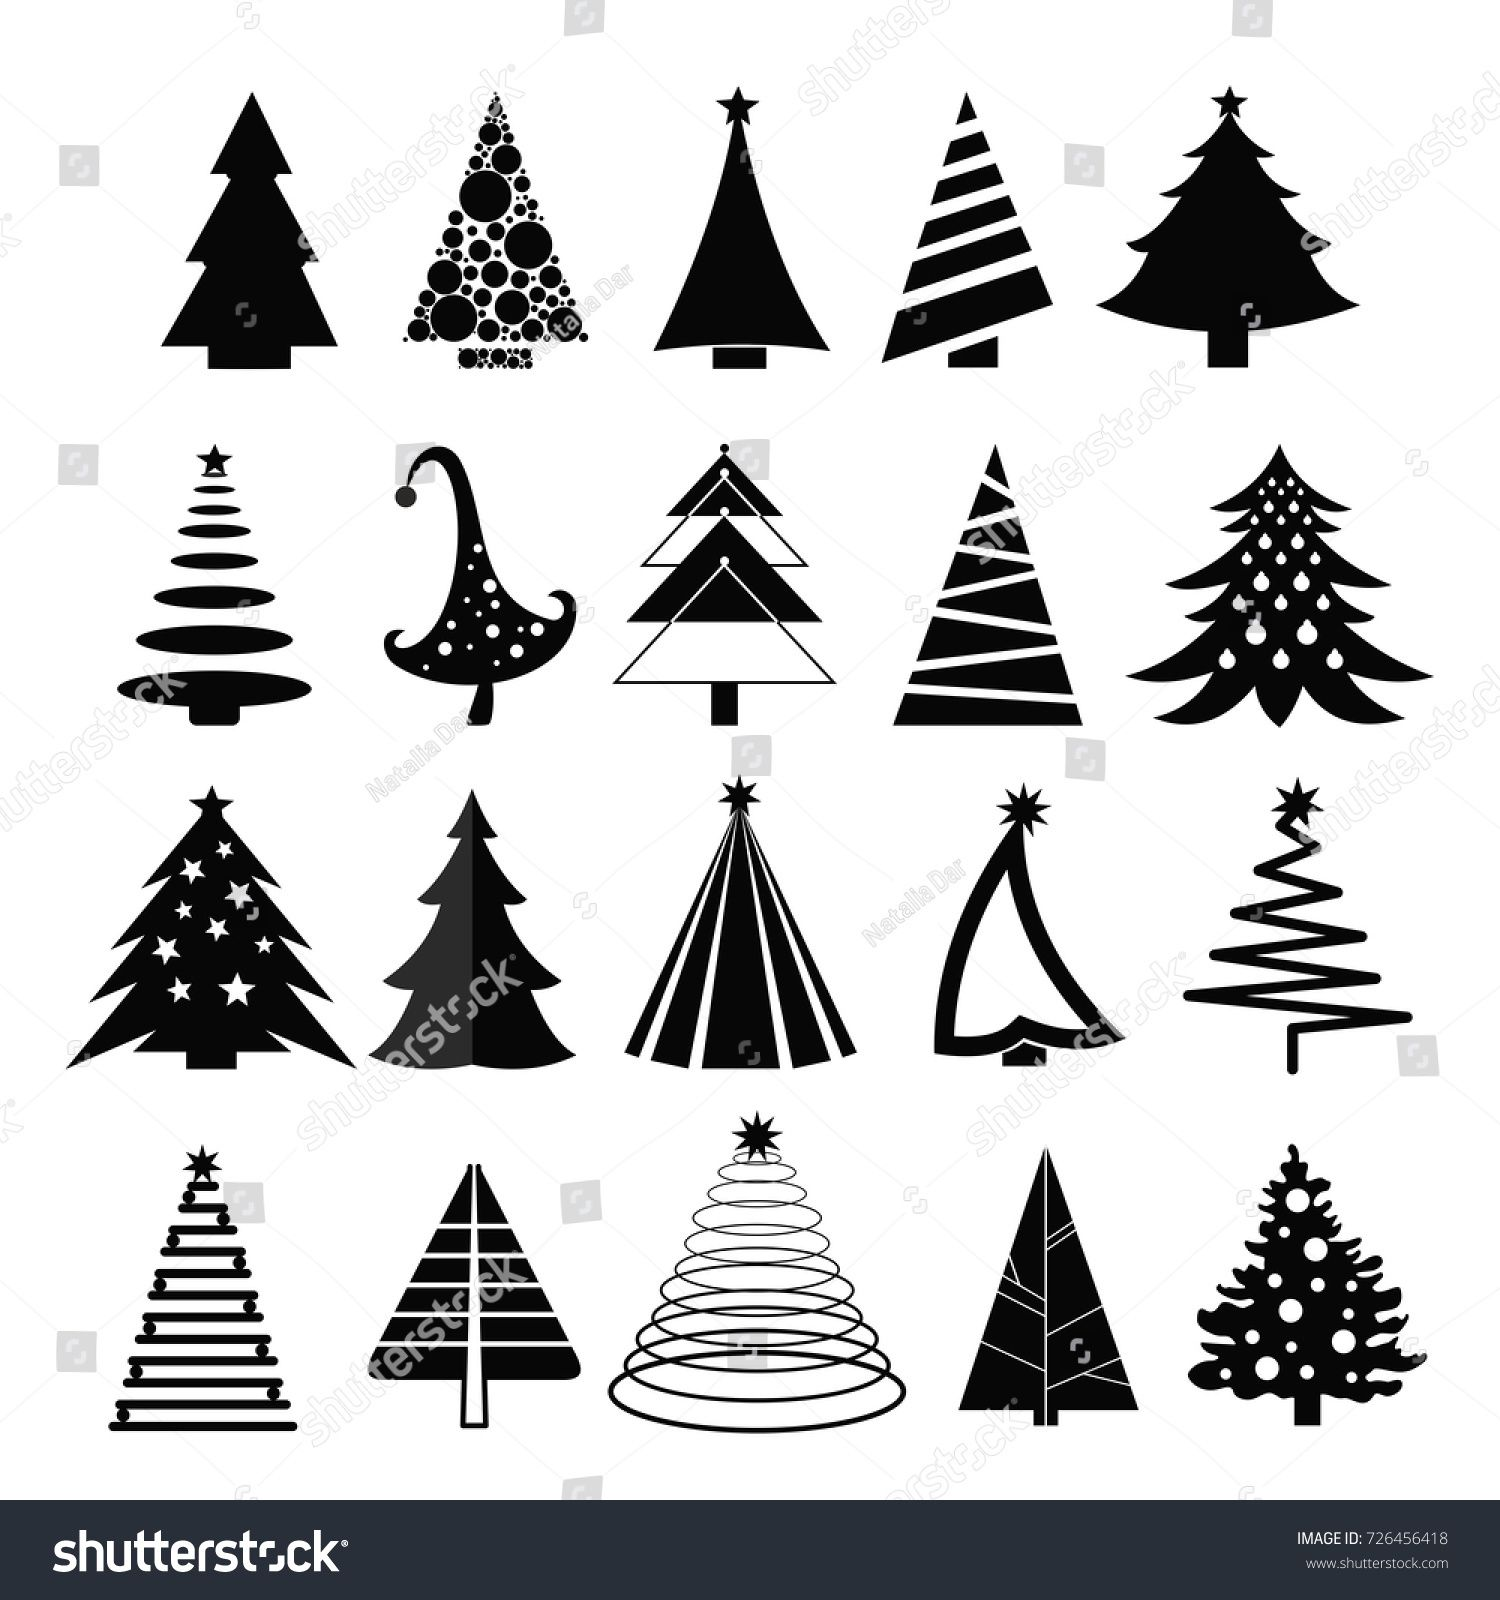 Tree silhouettes by Chrisdesign, Silhouette of a conifer